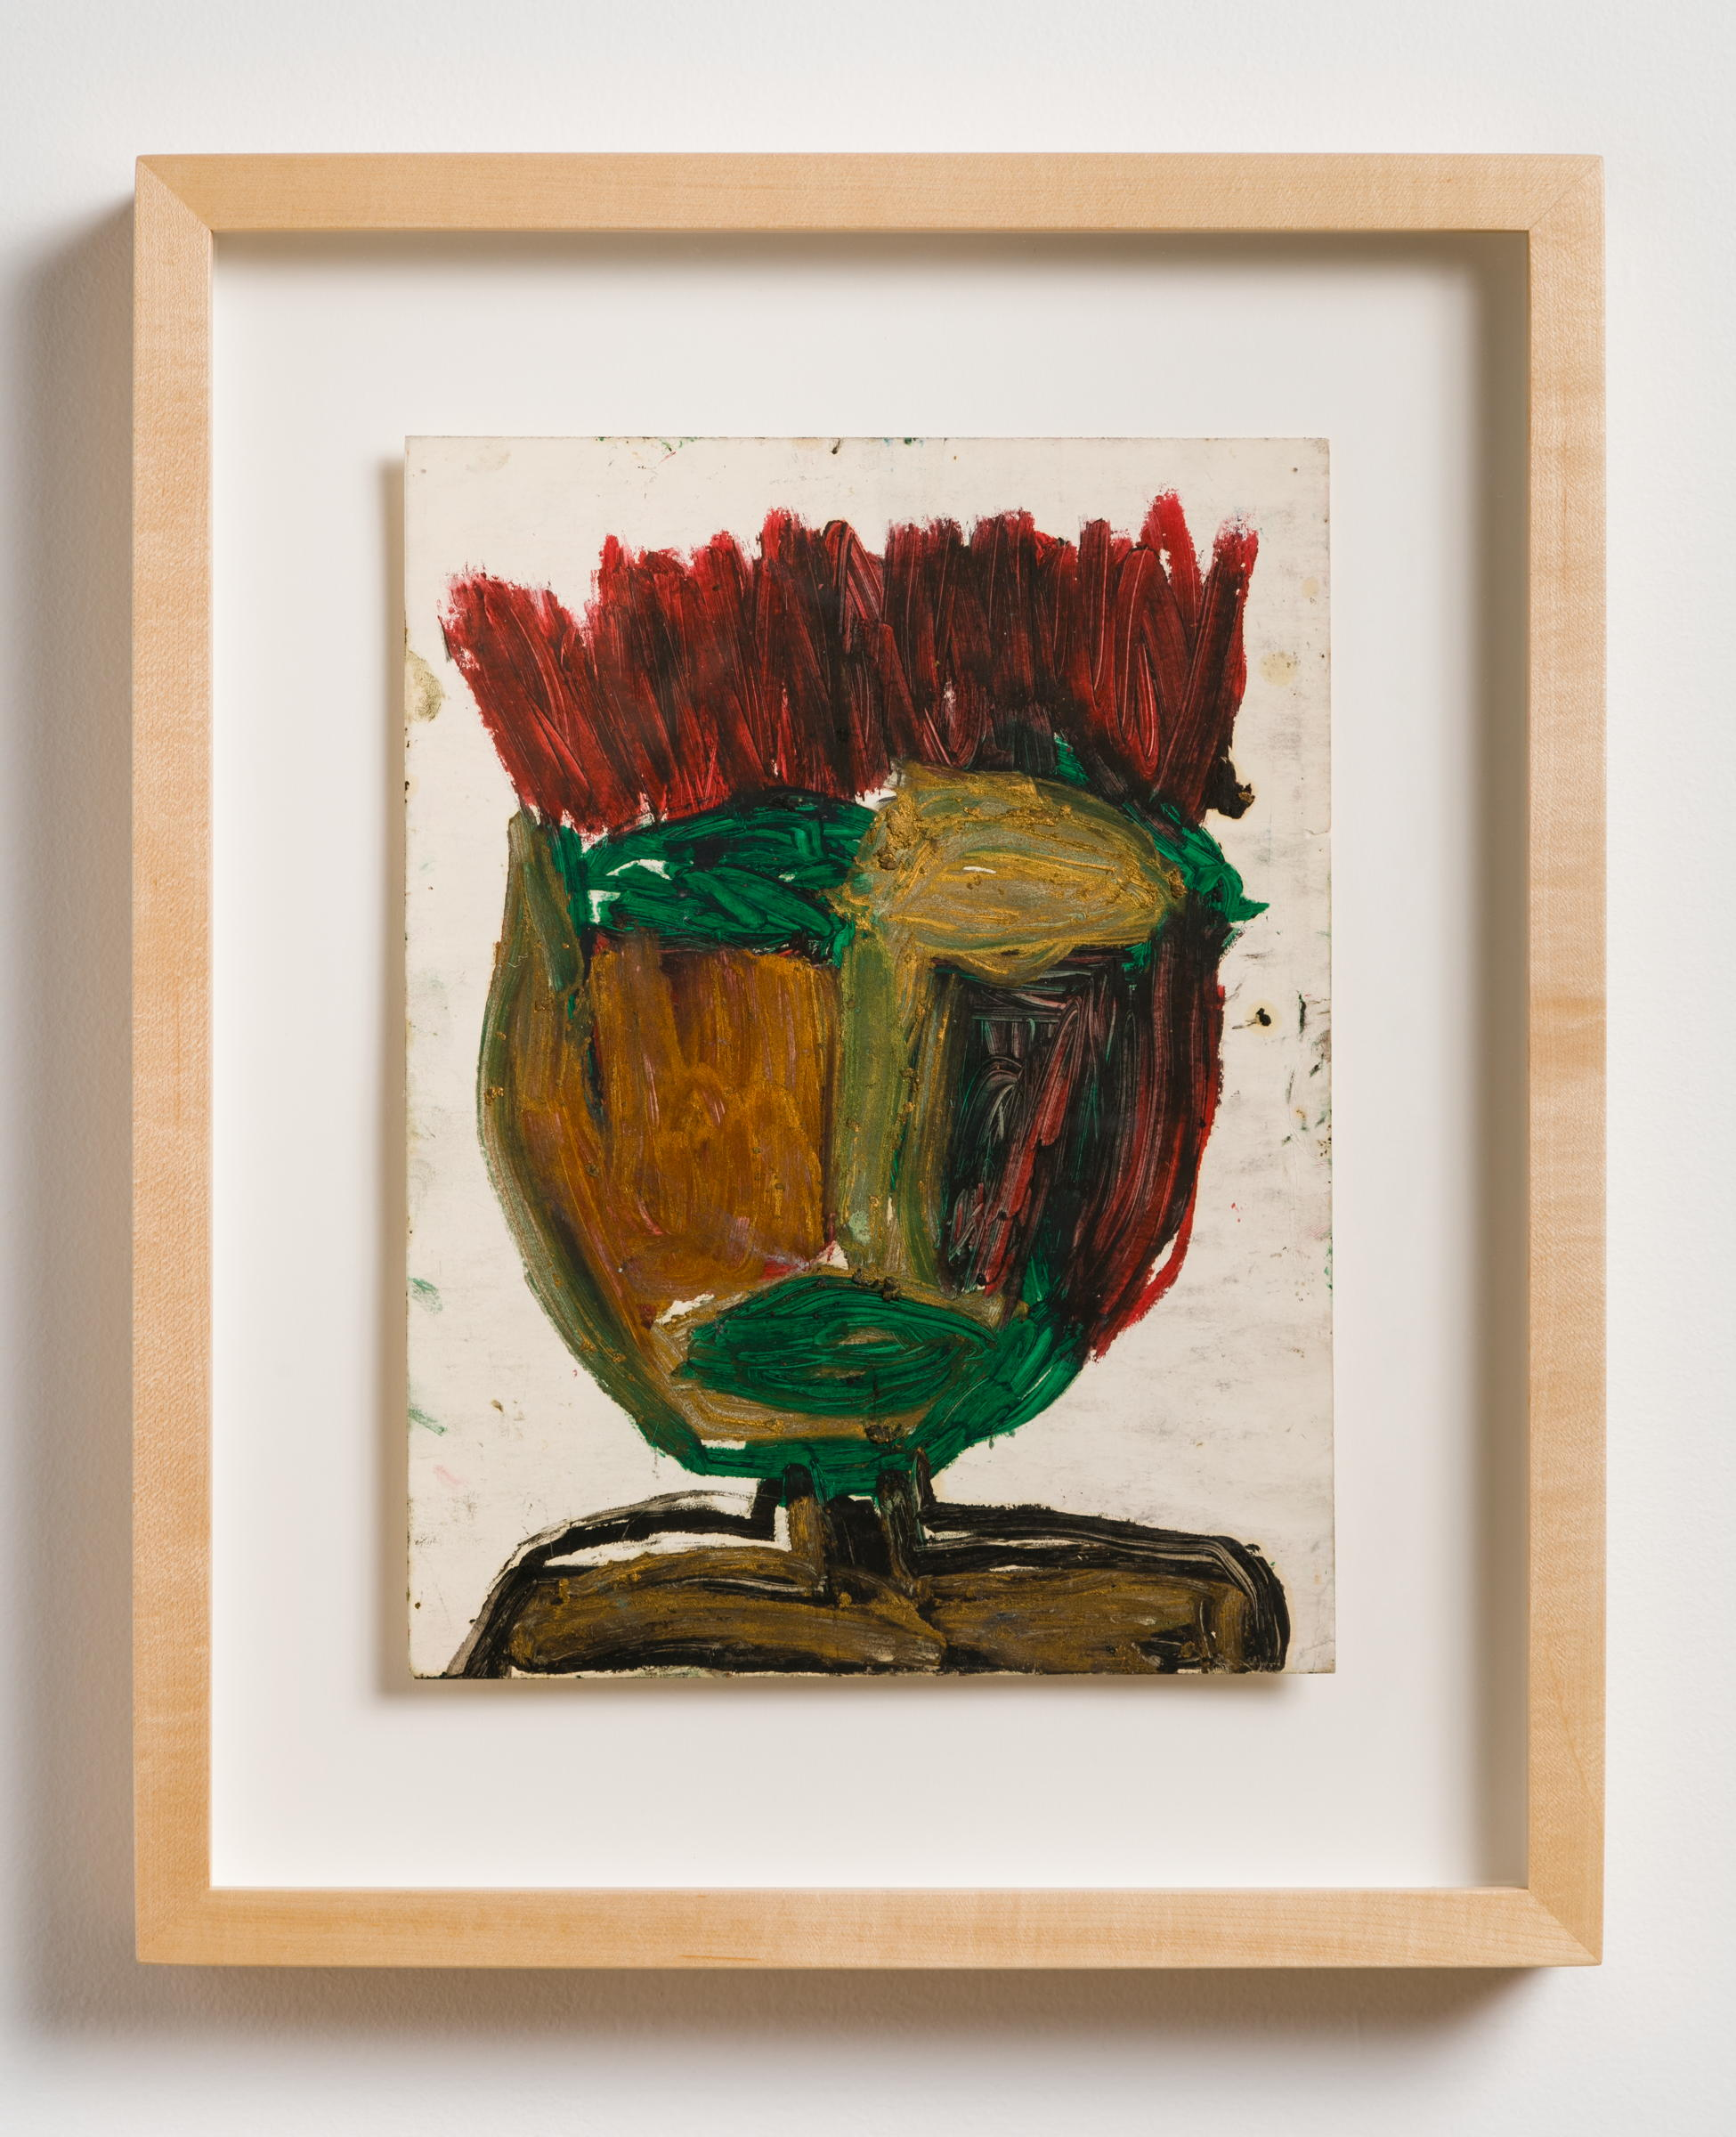 Dan Asher,    Untitled , 1980s, oil stick on paper, 11 ⅞ × 8 ⅞ in., 17 ¼ × 14 in. (framed)